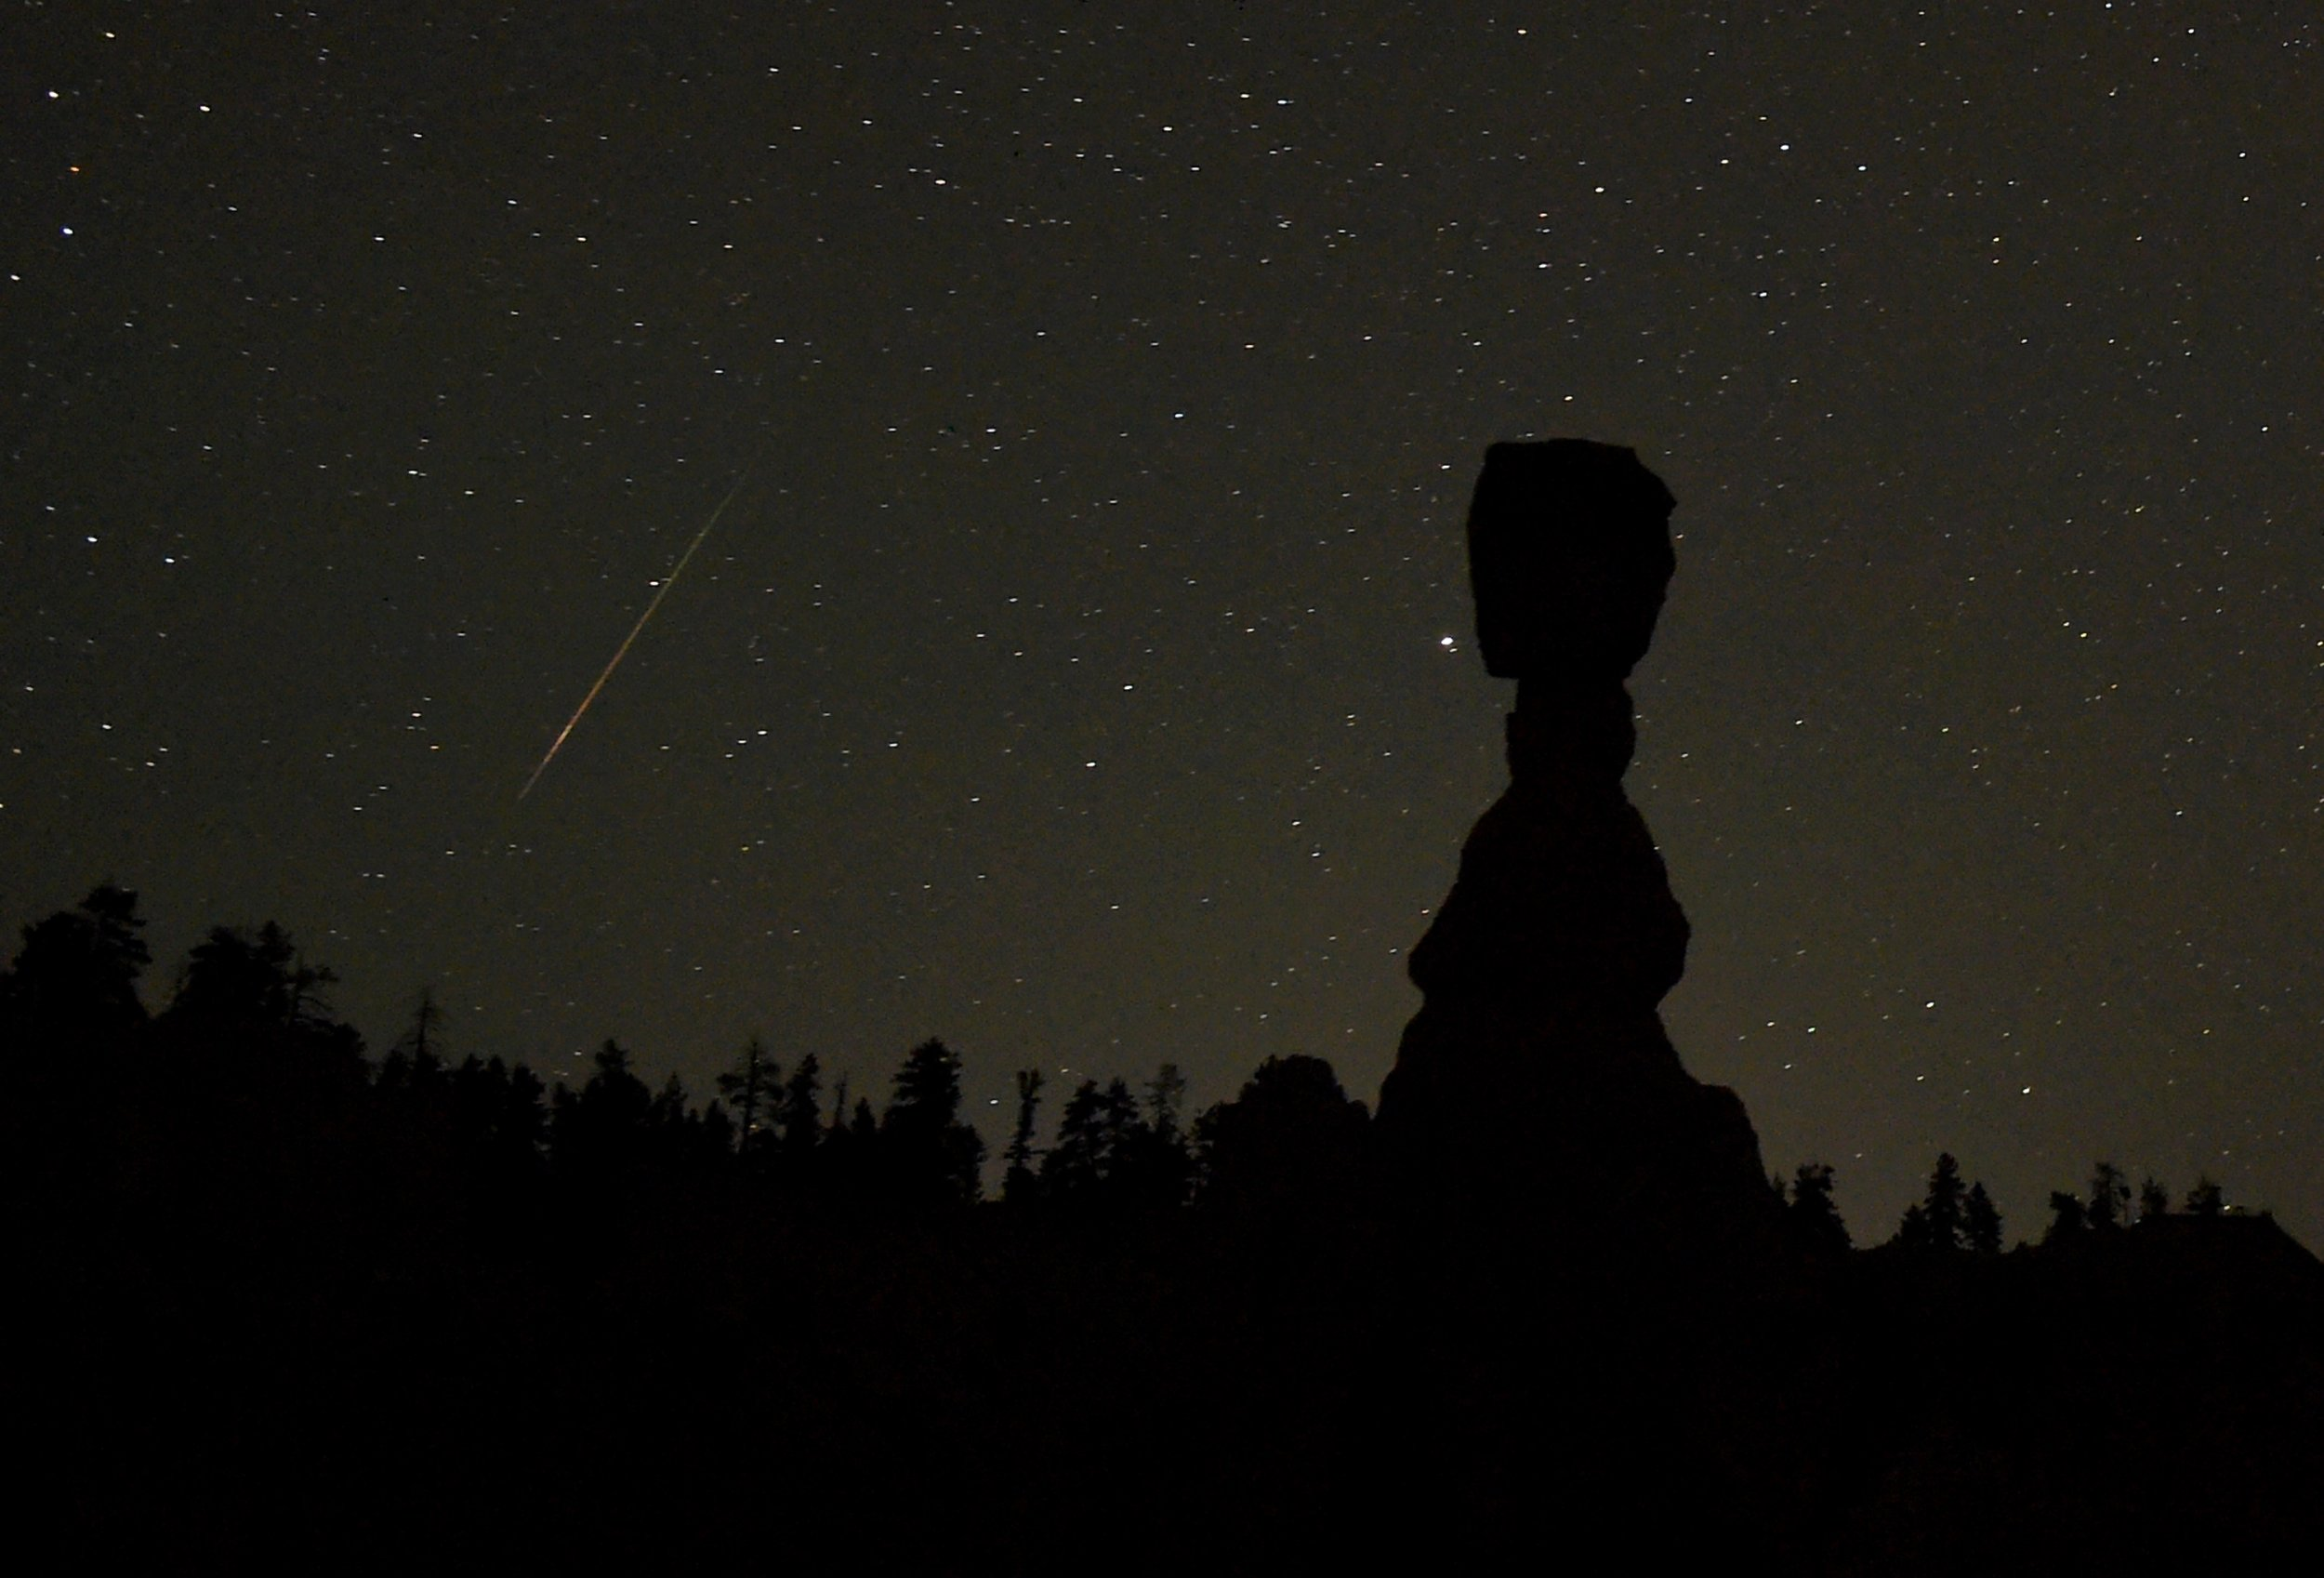 Mars, Venus and the Perseid Meteor Shower: Everything You ...